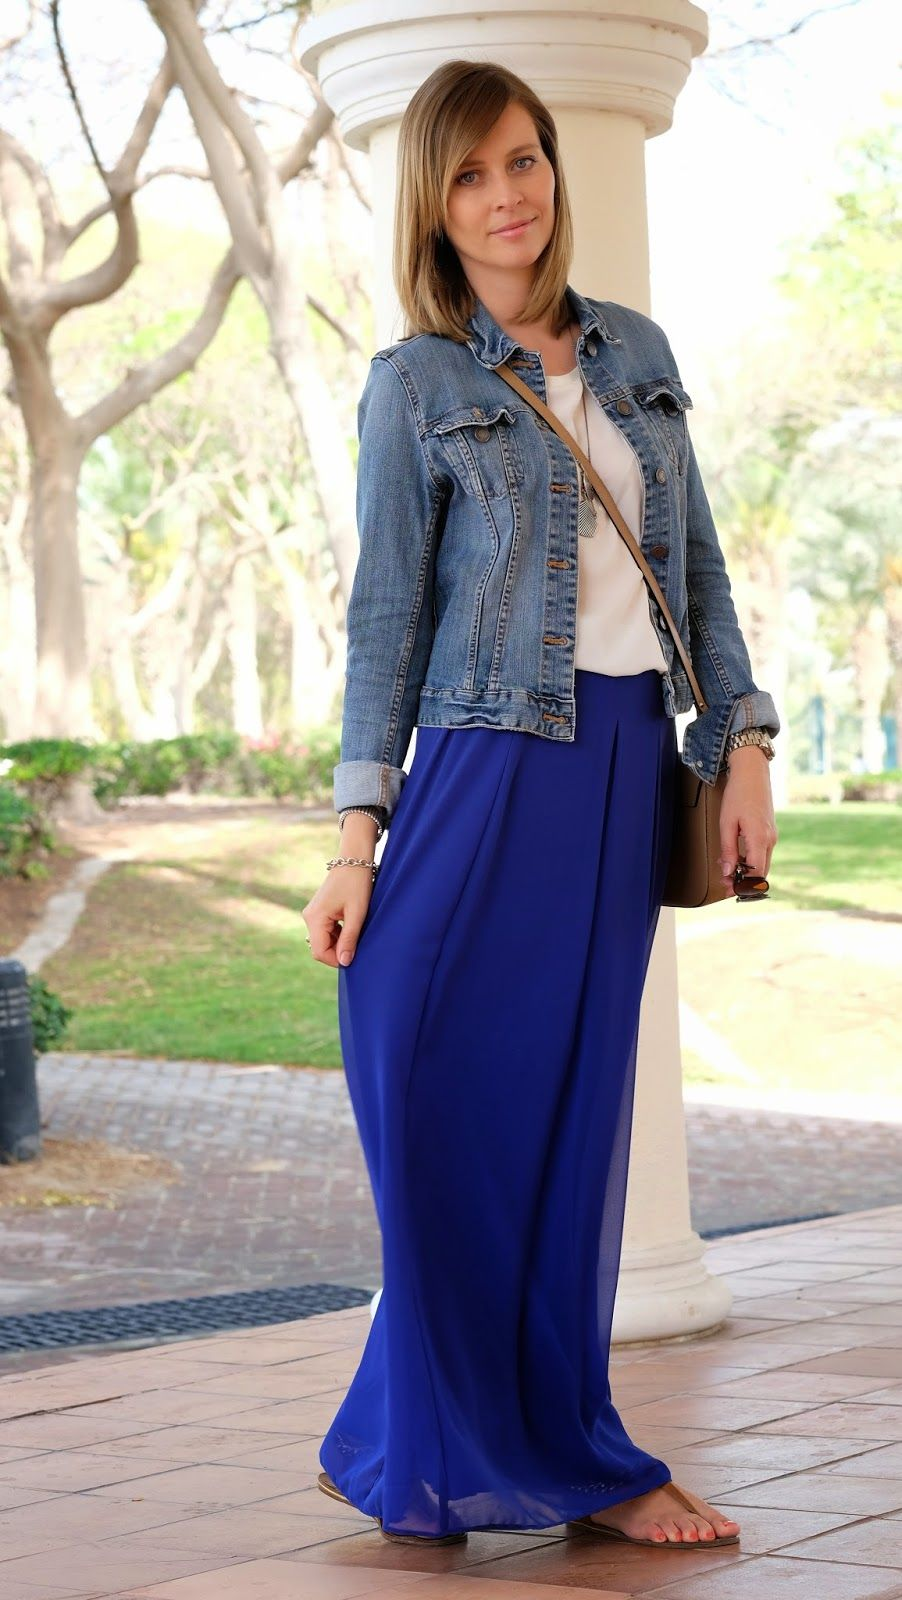 The Royal Blue Maxi Skirt / Lifestyle Oasis | My closet ...